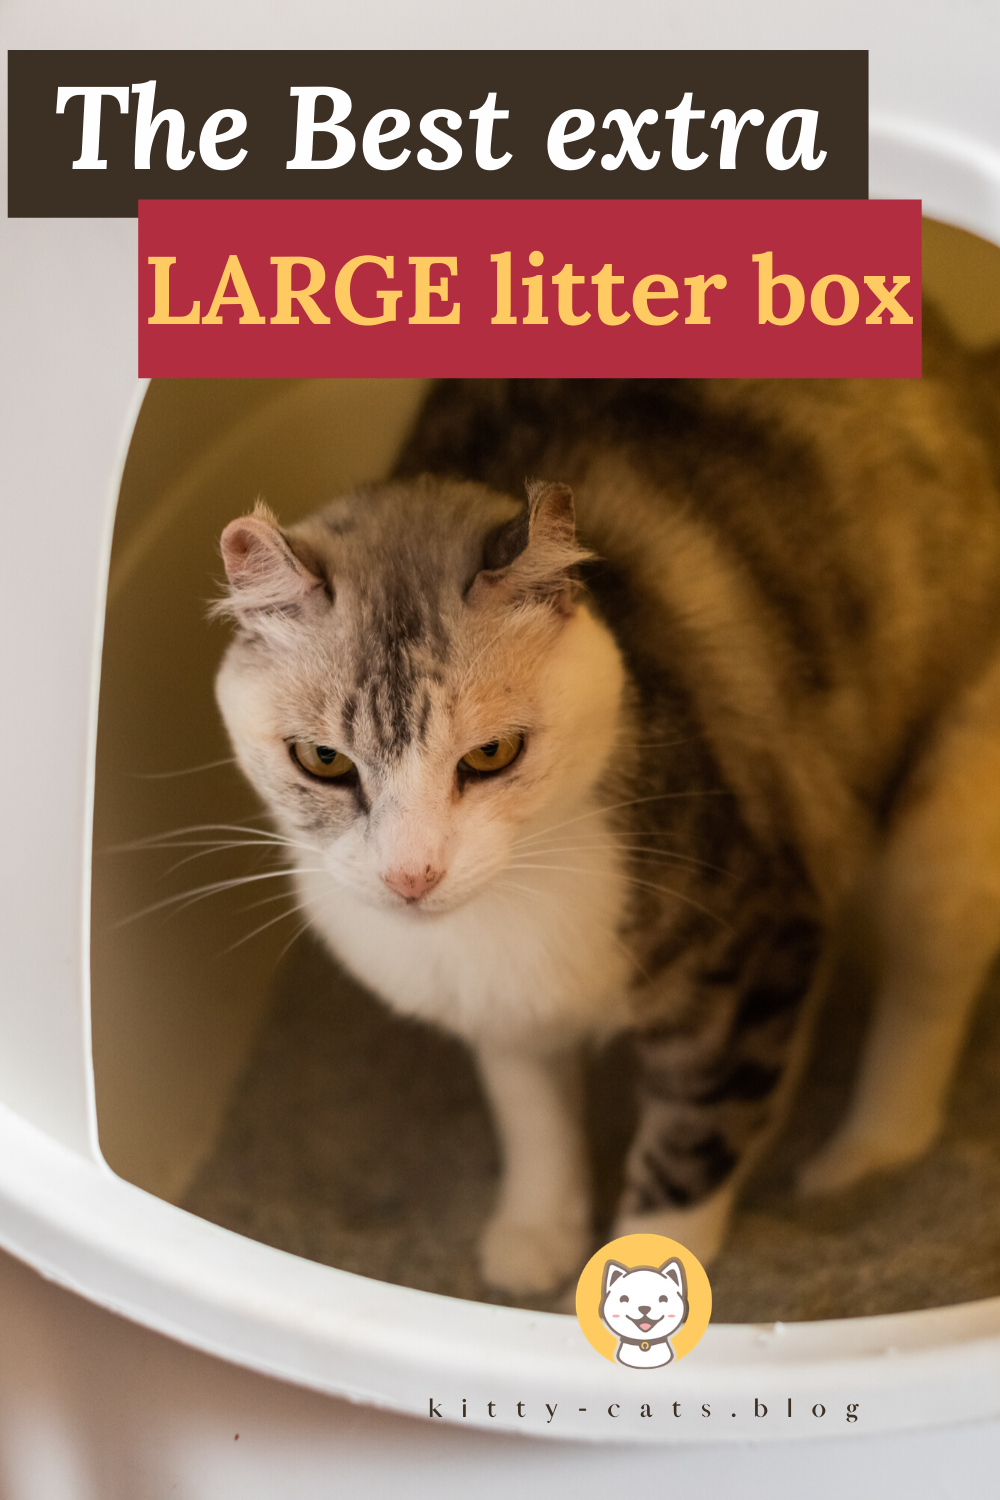 The Best Extra Large Litter Boxes In 2020 Kitty Cats Blog In 2020 Best Small Pets Cat Supplies Diy Best Cat Litter